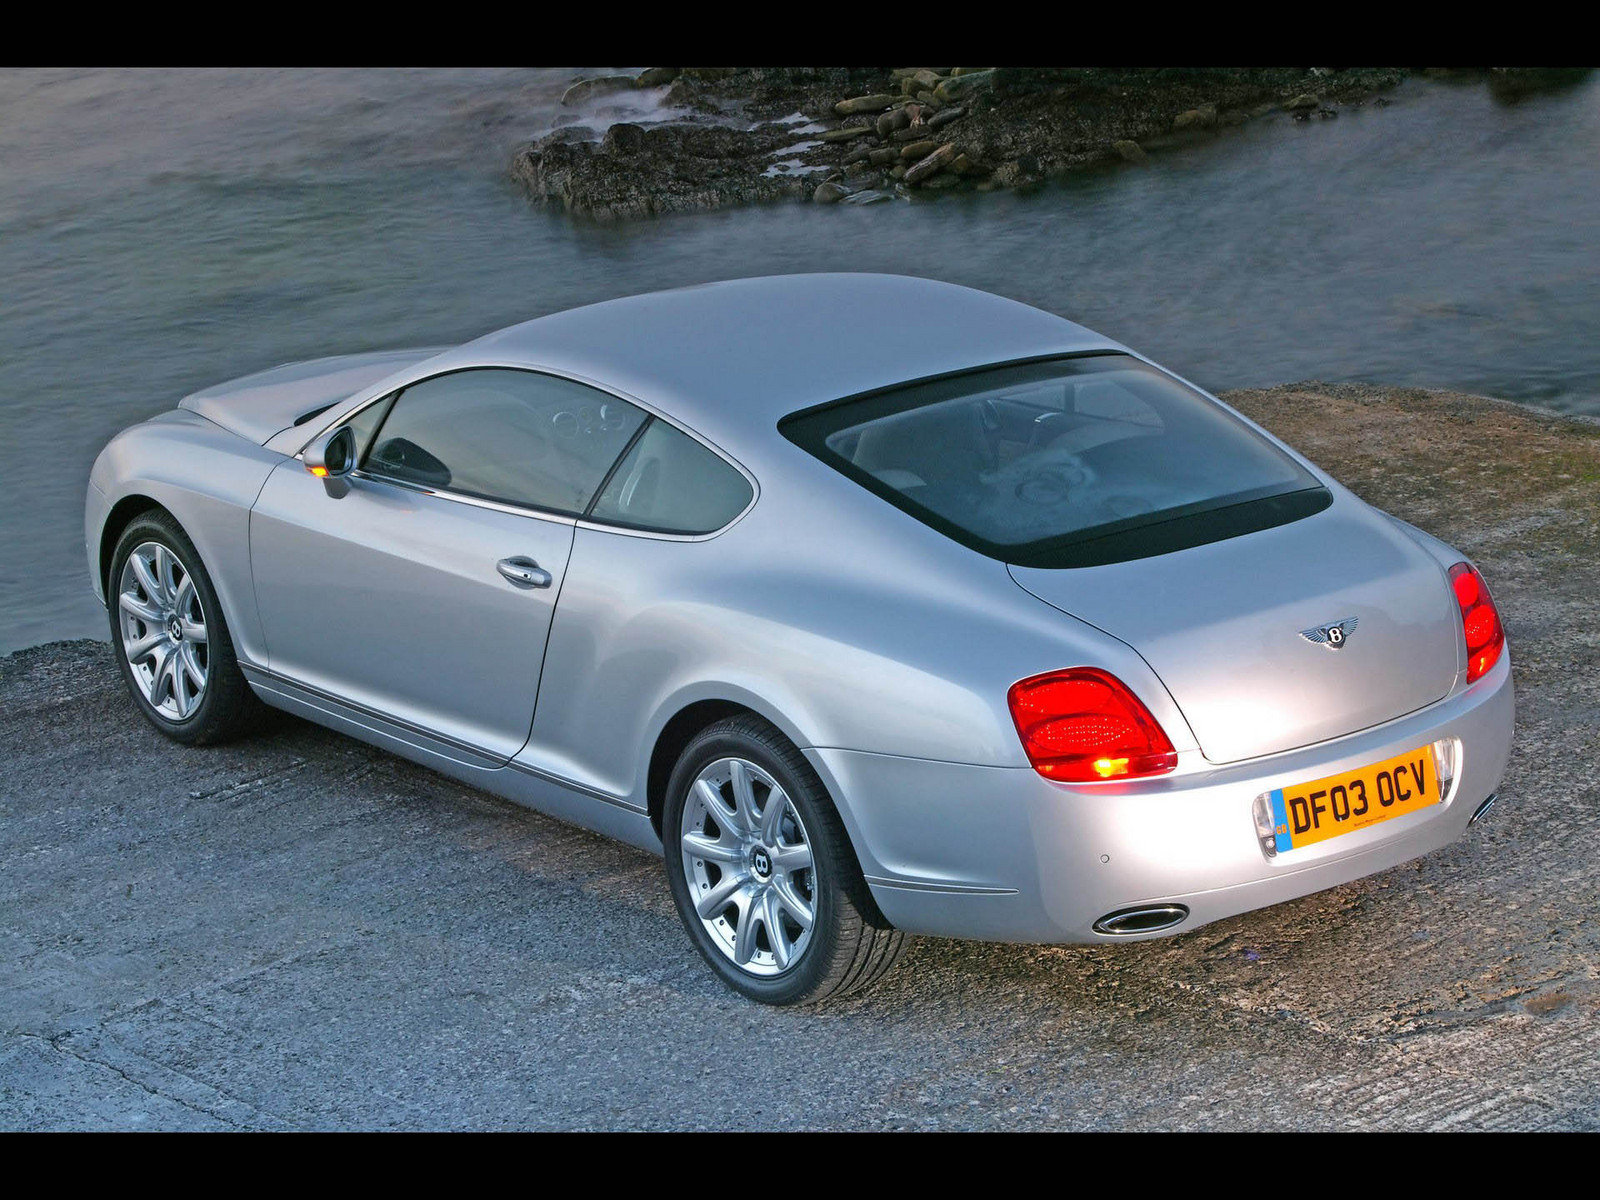 2005 bentley continental gt picture 2194 car review top speed. Cars Review. Best American Auto & Cars Review